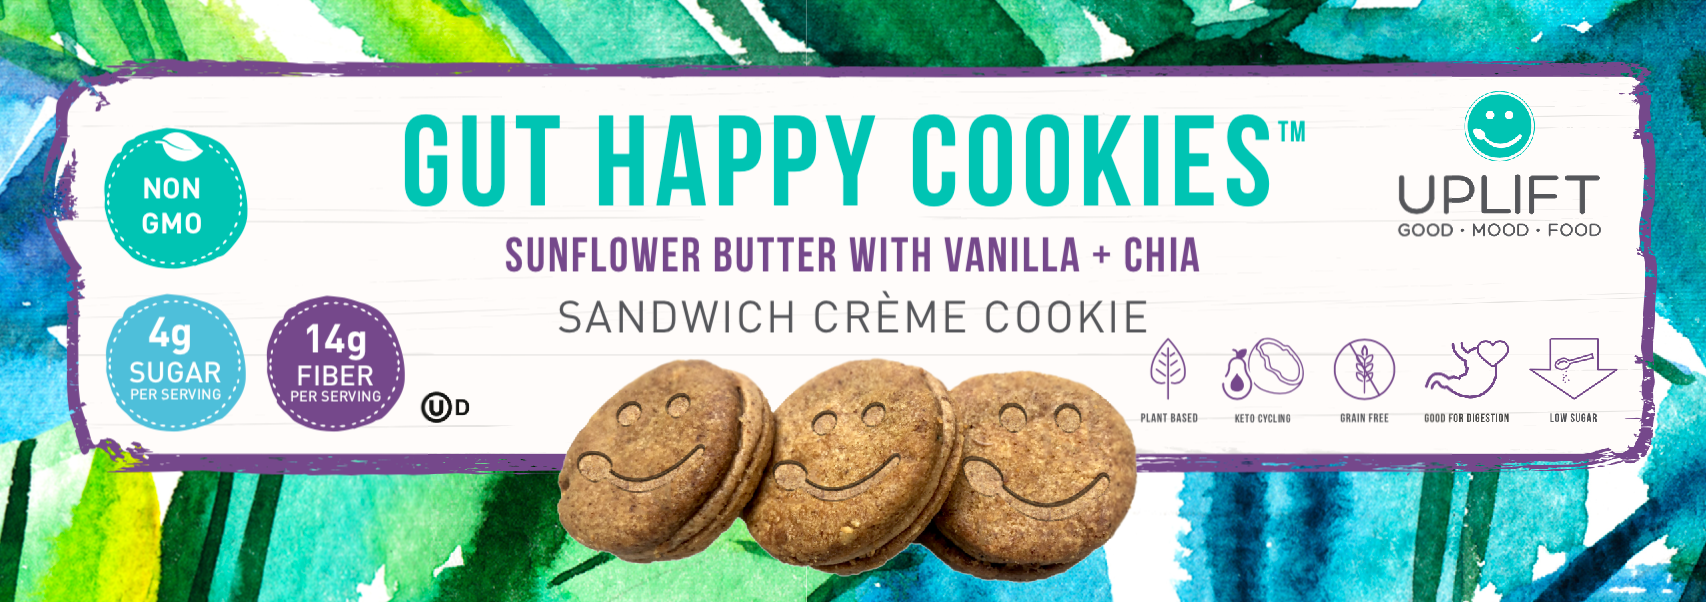 uplift food gut happy cookies prebiotic immunity functional snacks high fiber probiotics immune health